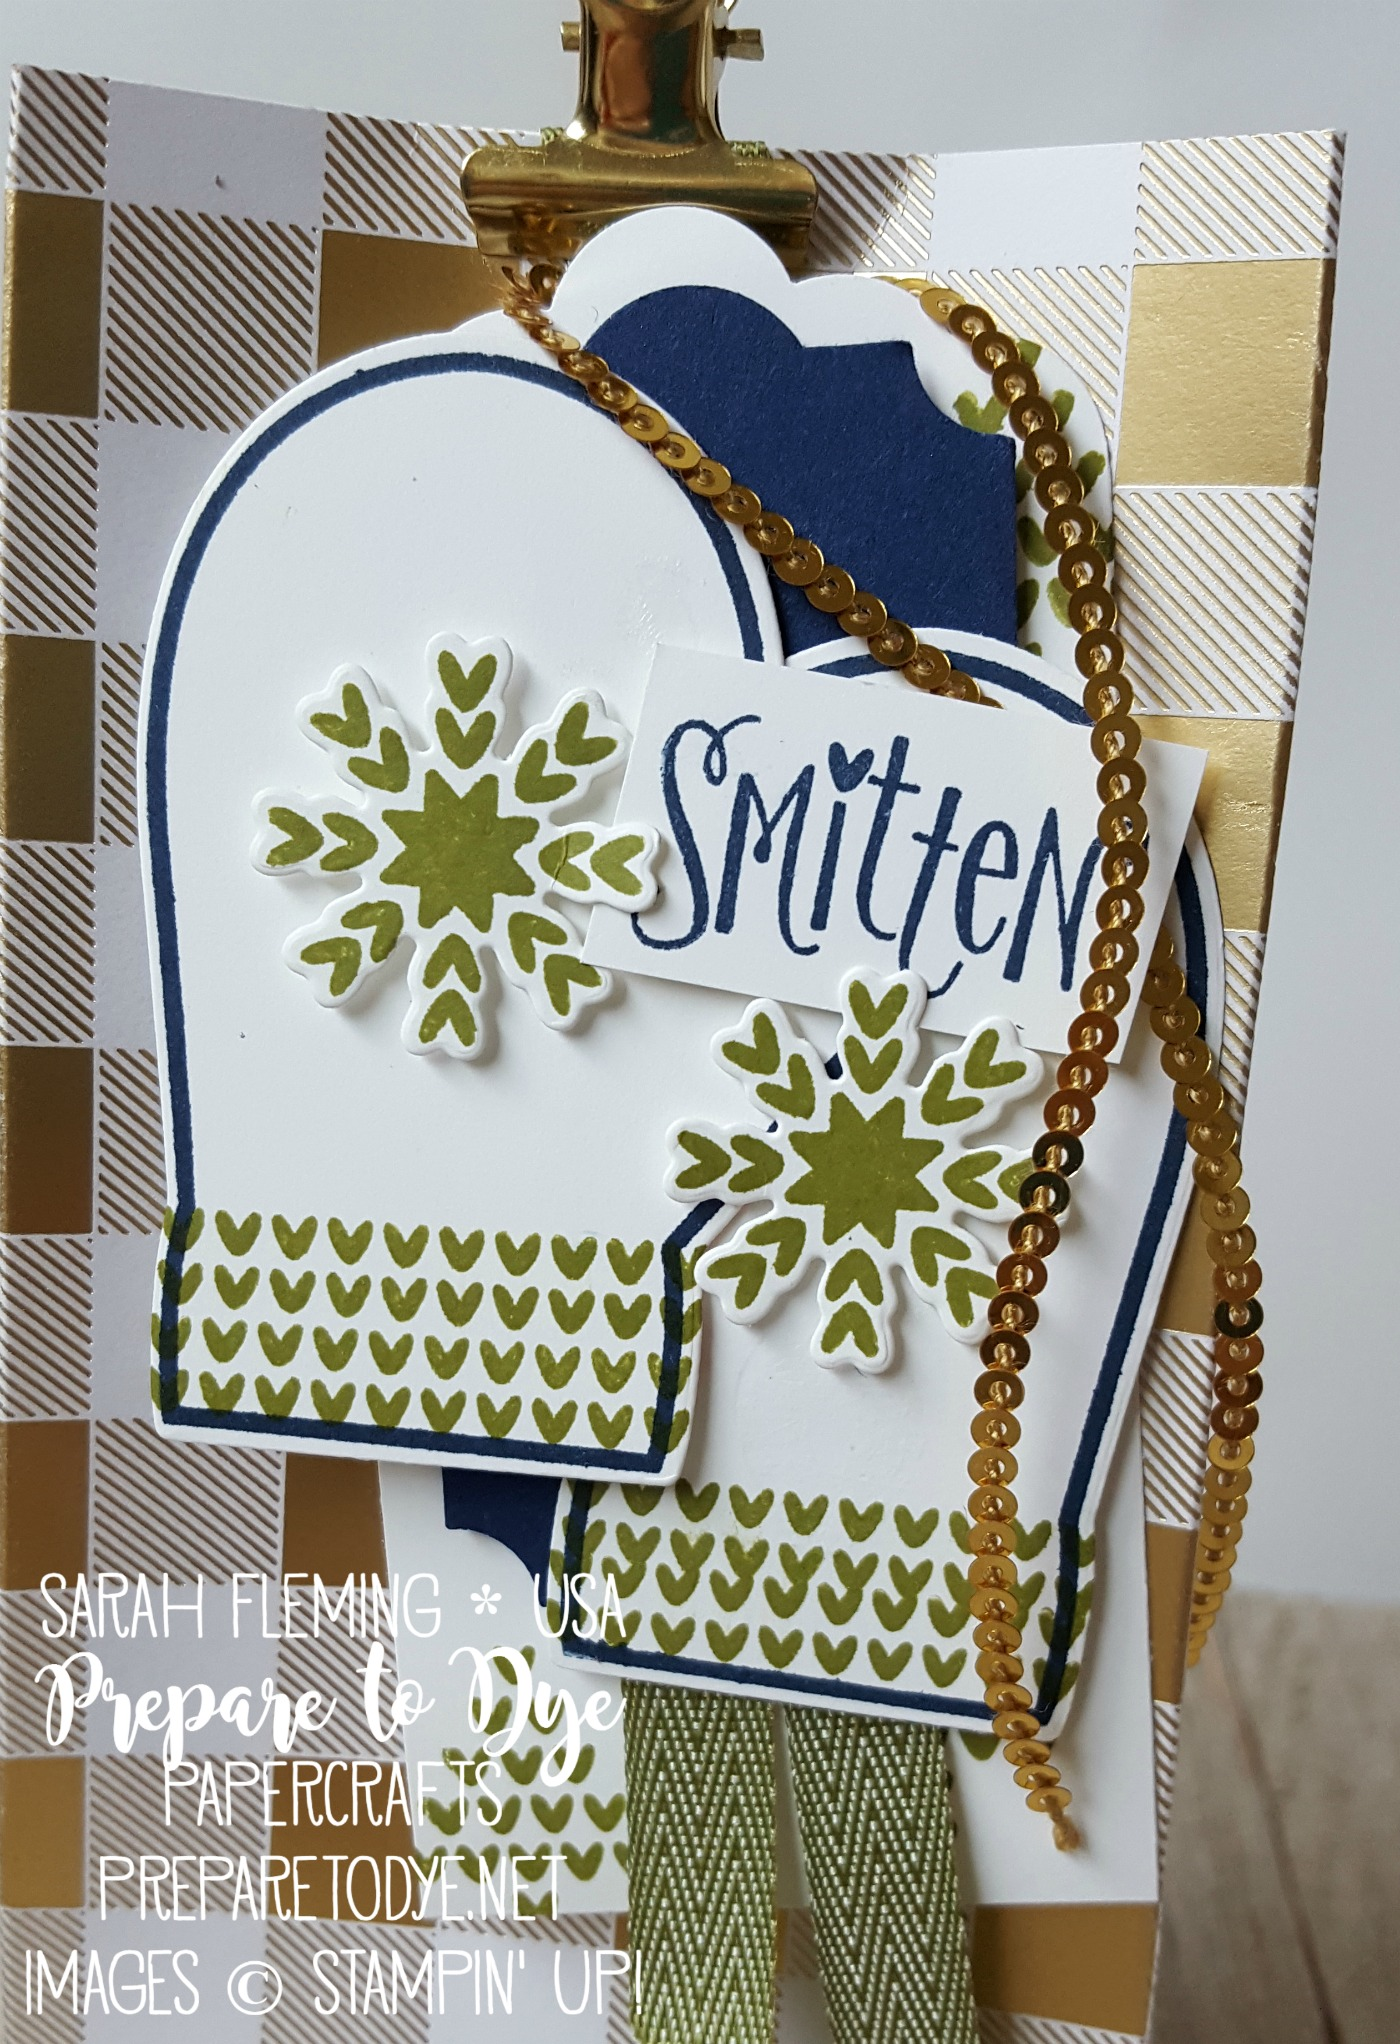 Stampin' Up! handmade gift bag with Year of Cheer paper, Smitten Mittens bundle, Many Mittens framelits - Sarah Fleming - Prepare to Dye Papercrafts